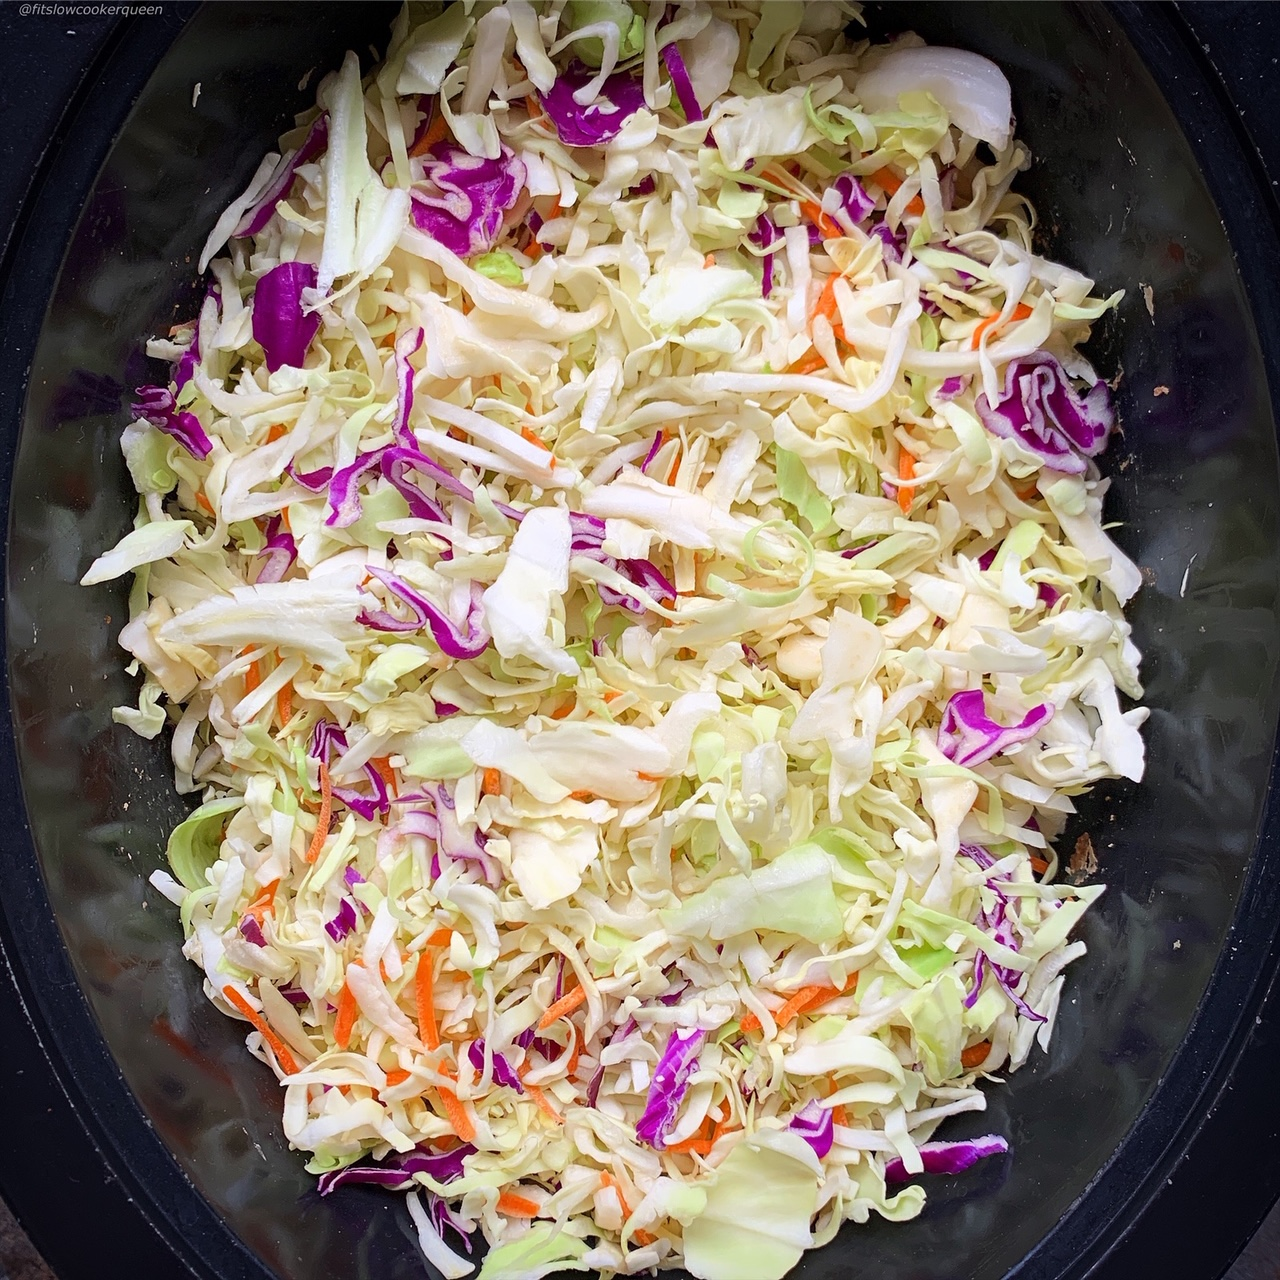 Crack slaw combines ground meat & coleslaw for an easy low-carb, paleo, and whole30  meal. Make this easy & healthy recipe in your slow cooker or Instant Pot.